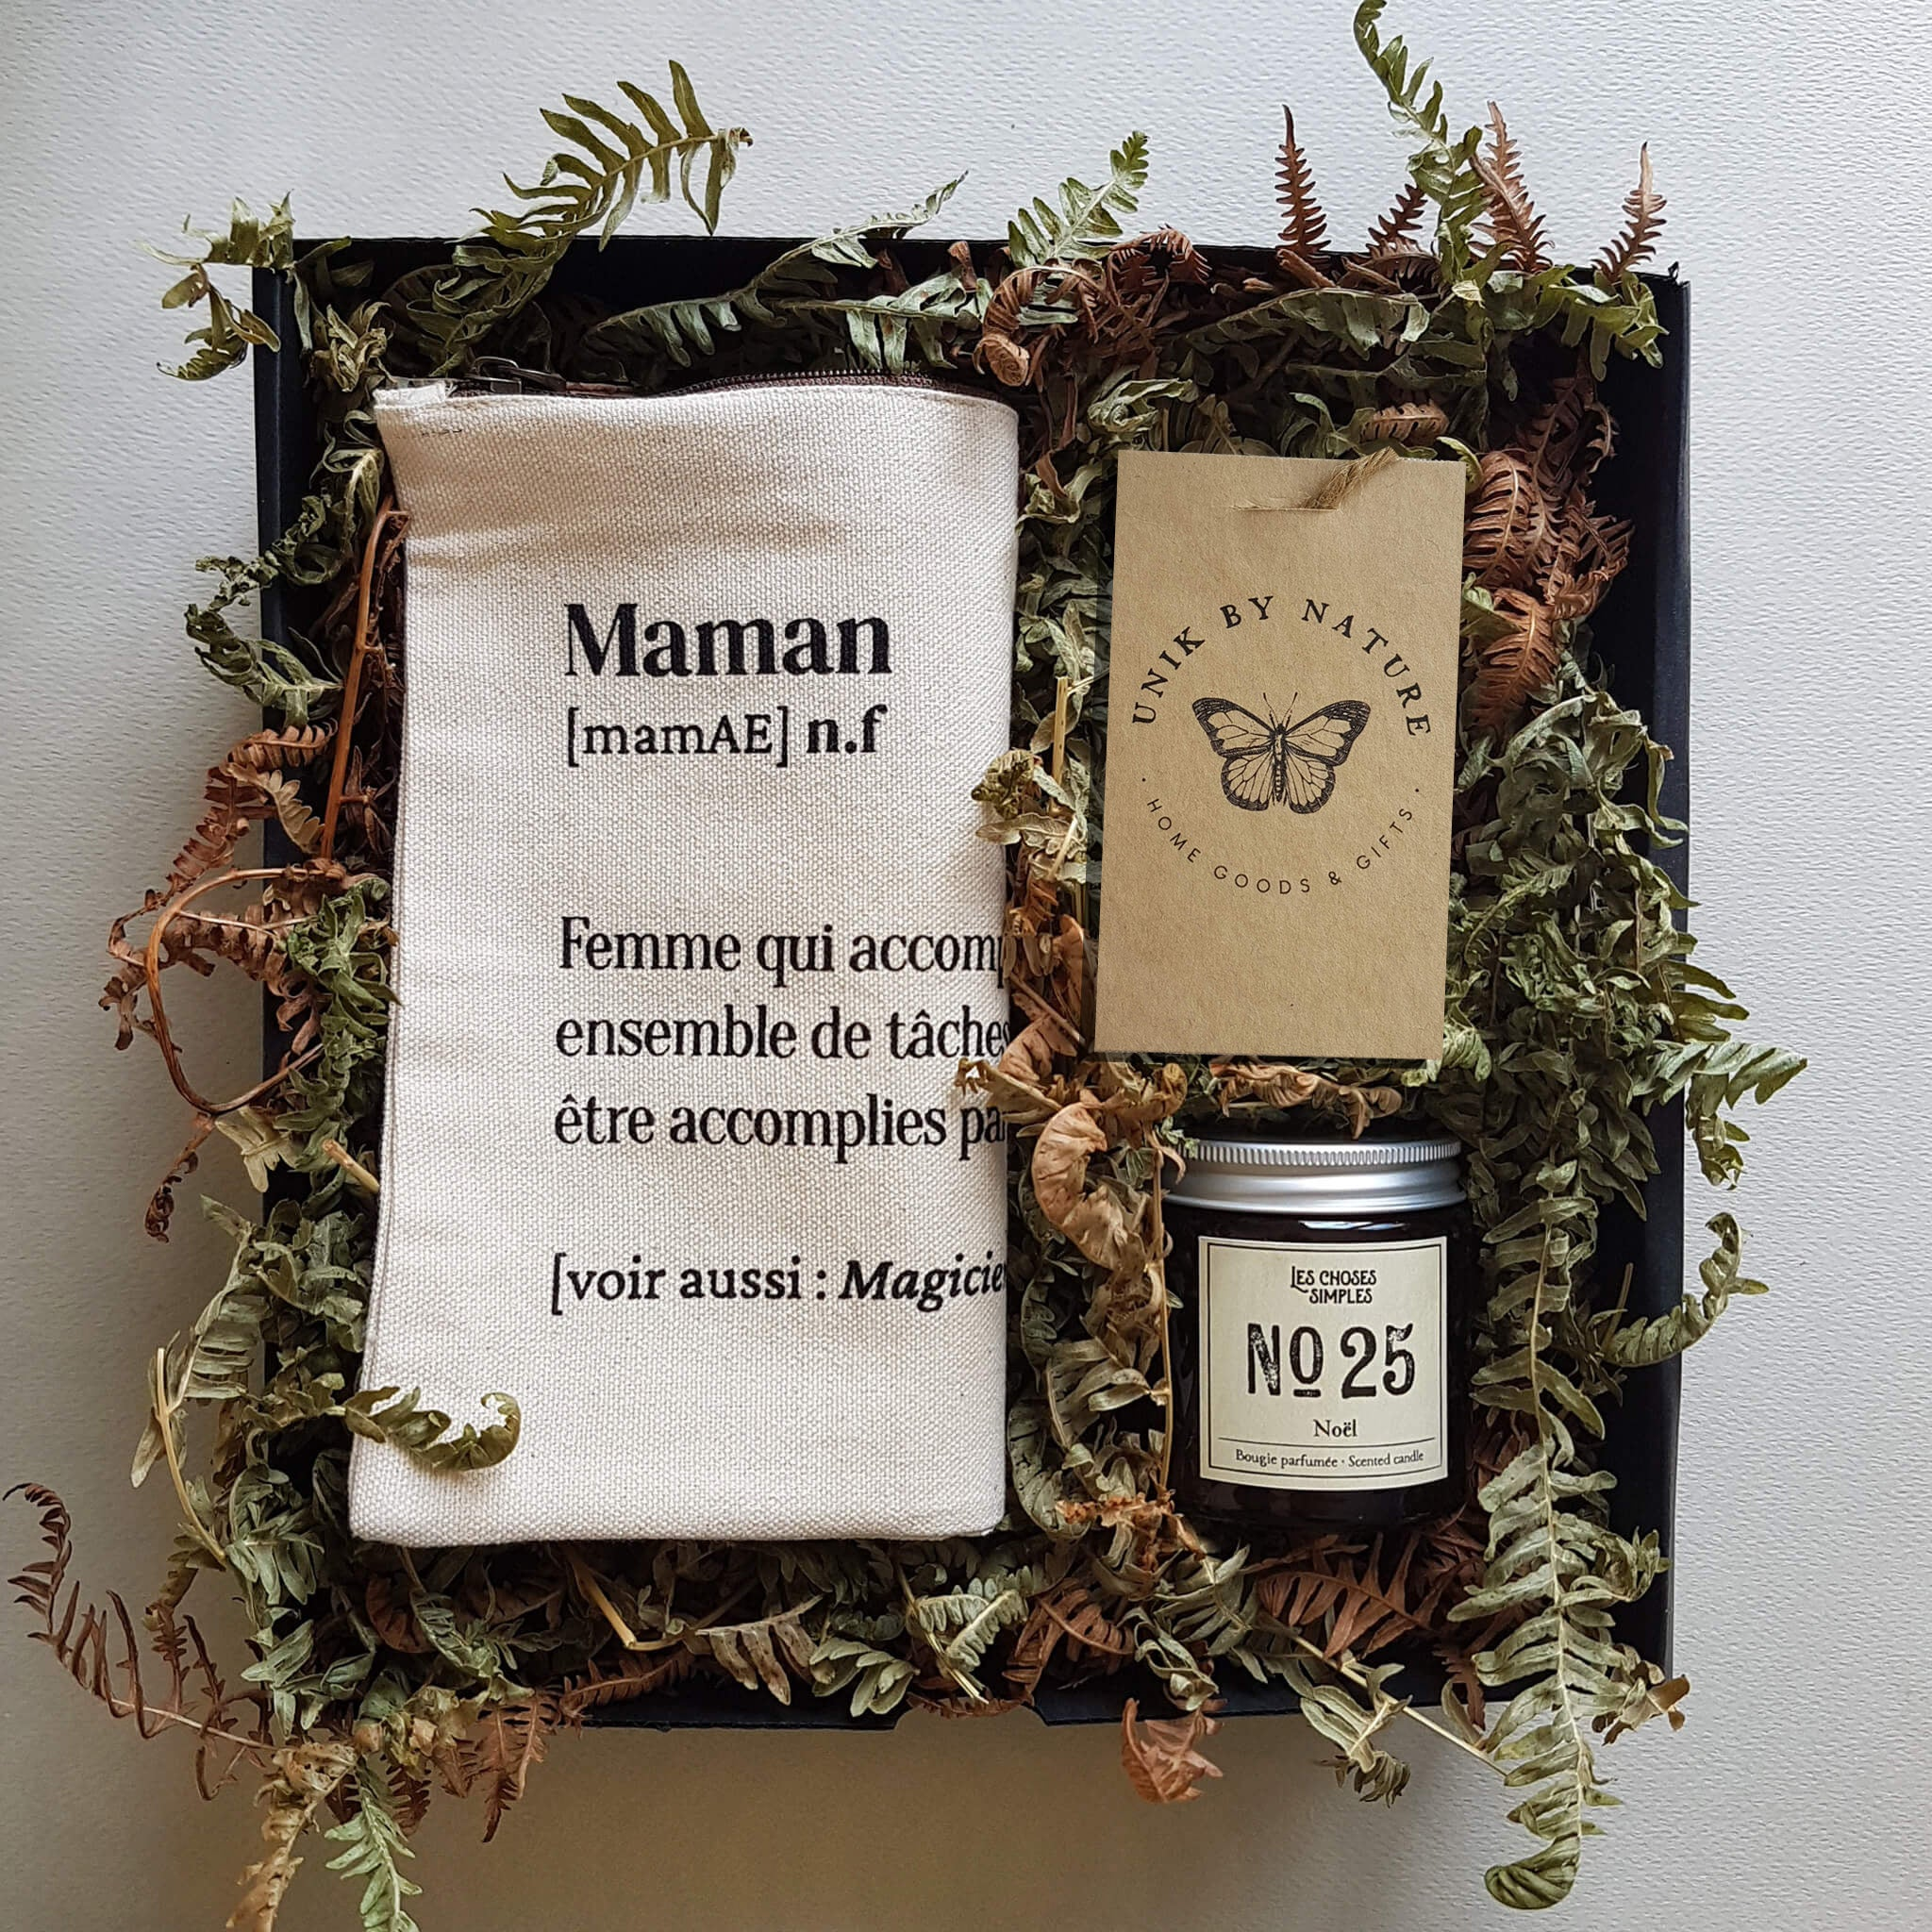 My Dearest - Gift Box - Unik by Nature